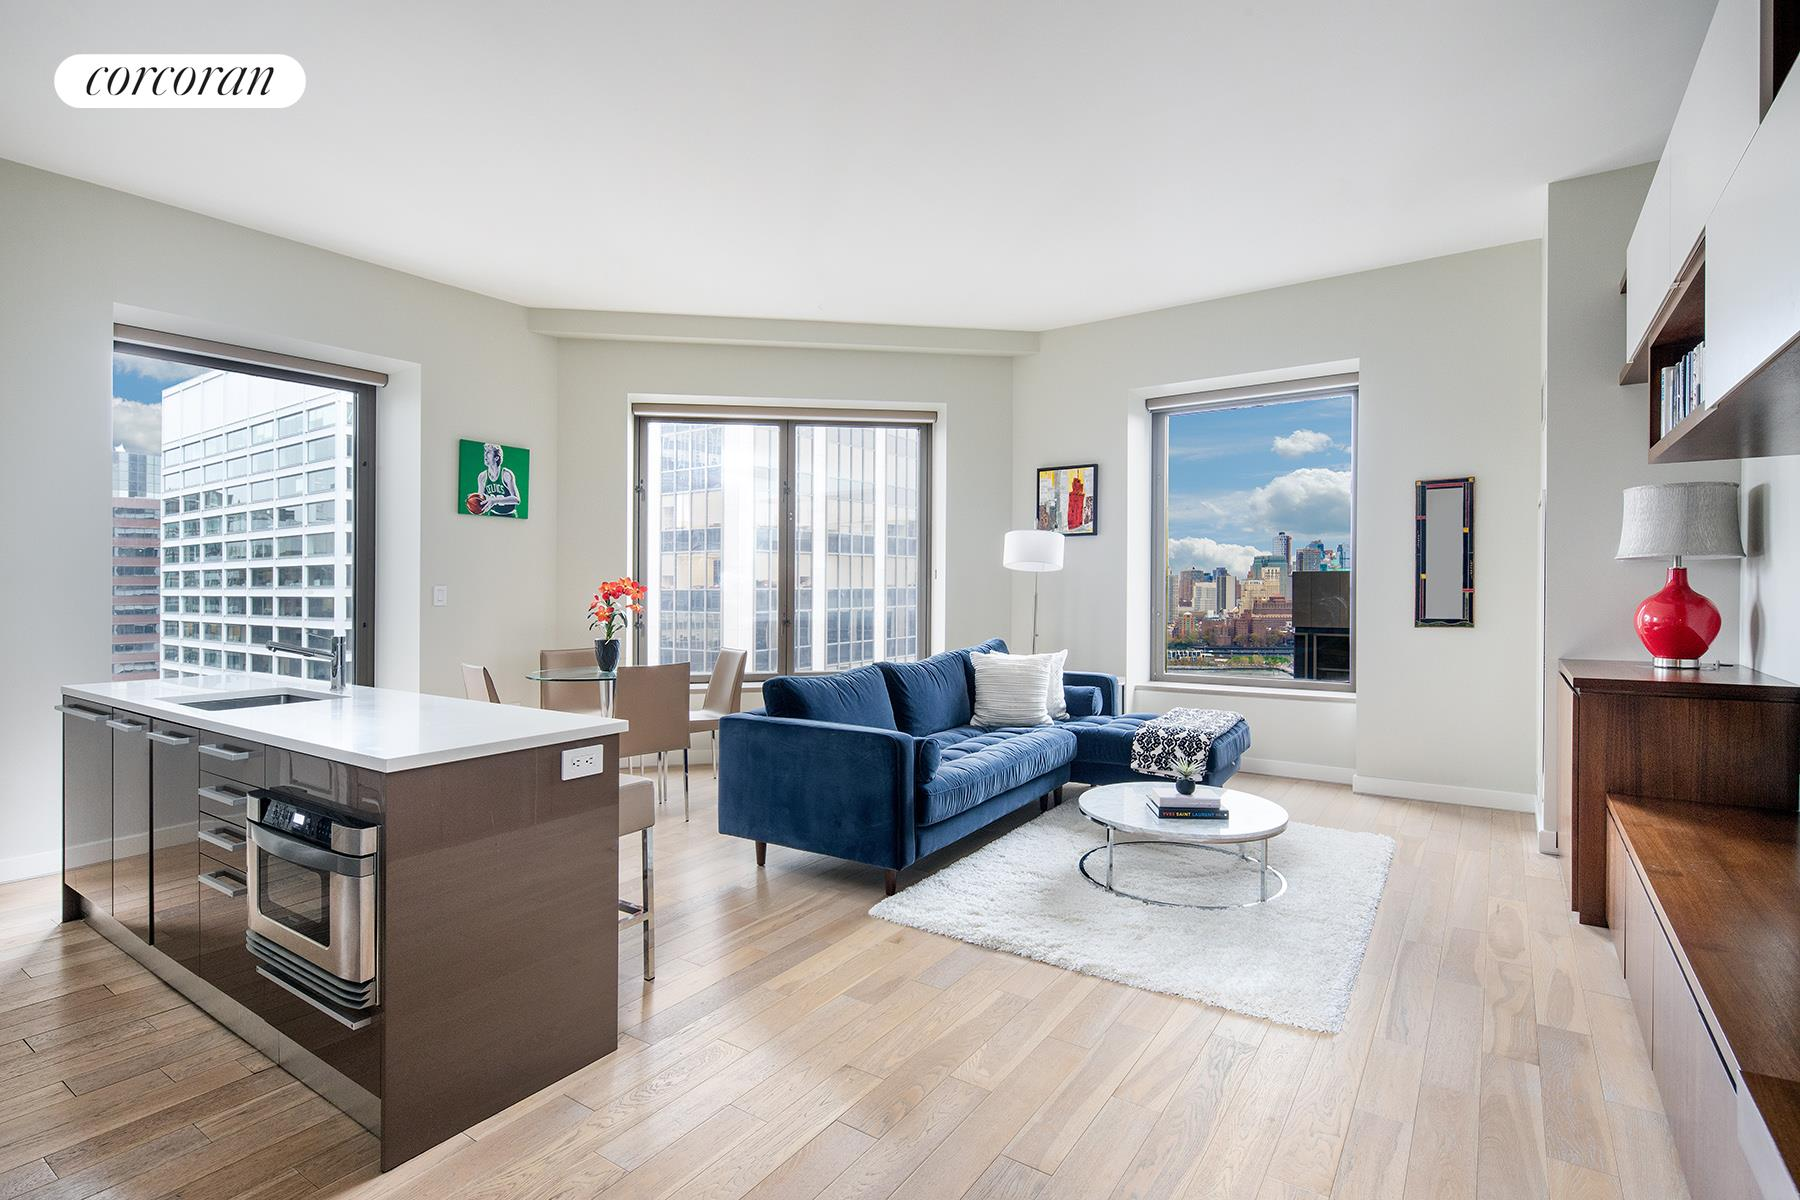 Welcome home to residence 29-O at 75 Wall Street. This breathtaking 2 Bed / 2 Bath corner unit has direct East River views, as well as 10' ceilings, oversized 6' windows, split-bedroom layout, individual heat pump HVAC, and an in-unit Bosch washer/dryer.The apartment features wide-planked Cerused oak flooring throughout, and an open chef's kitchen with top of the line appliances including Sub-Zero refrigerator, Bosch dual ovens and a five-burner range, and Miele dishwasher. Sleek lacquered cabinetry by the Italian Design Studio, CaesarStone counters, and glass tile backsplash make this kitchen as stylish as it is functional.Both gut renovated bedrooms are well-proportioned with ample storage. The renovation includes brand new bathtubs, showers, fixtures, countertops and lighting. In addition, all doors, frames and baseboard moldings throughout the apartment are brand new. All custom upgrades are by Dartom Construction, one of New York's finest custom contractors.Enjoy Andaz 5 Star Hotel amenities such as room service, catering, housekeeping, on-site parking, valet laundry, and a 24-hour doorman and concierge services. 75 Wall Street offers 30,000 square feet of amenities including the stunning 360 Sky Terrace Lounge with indoor/outdoor fireplace, bar/seating, hammocks, and gas grill with jaw-dropping river views, and skyline views of Brooklyn and Manhattan. Enjoy a world-class fitness center, screening room, Yoga/Pilates studio and kids' playroom.This downtown location is conveniently located near restaurants such as Nobu, Augustine, Capital Grille, Cipriani, Eataly, Le District, and Jean-Georges. Enjoy tons of shops at Brookfield, Westfield, Calatrava Occulus, Farmers markets, and a Whole Foods coming soon.